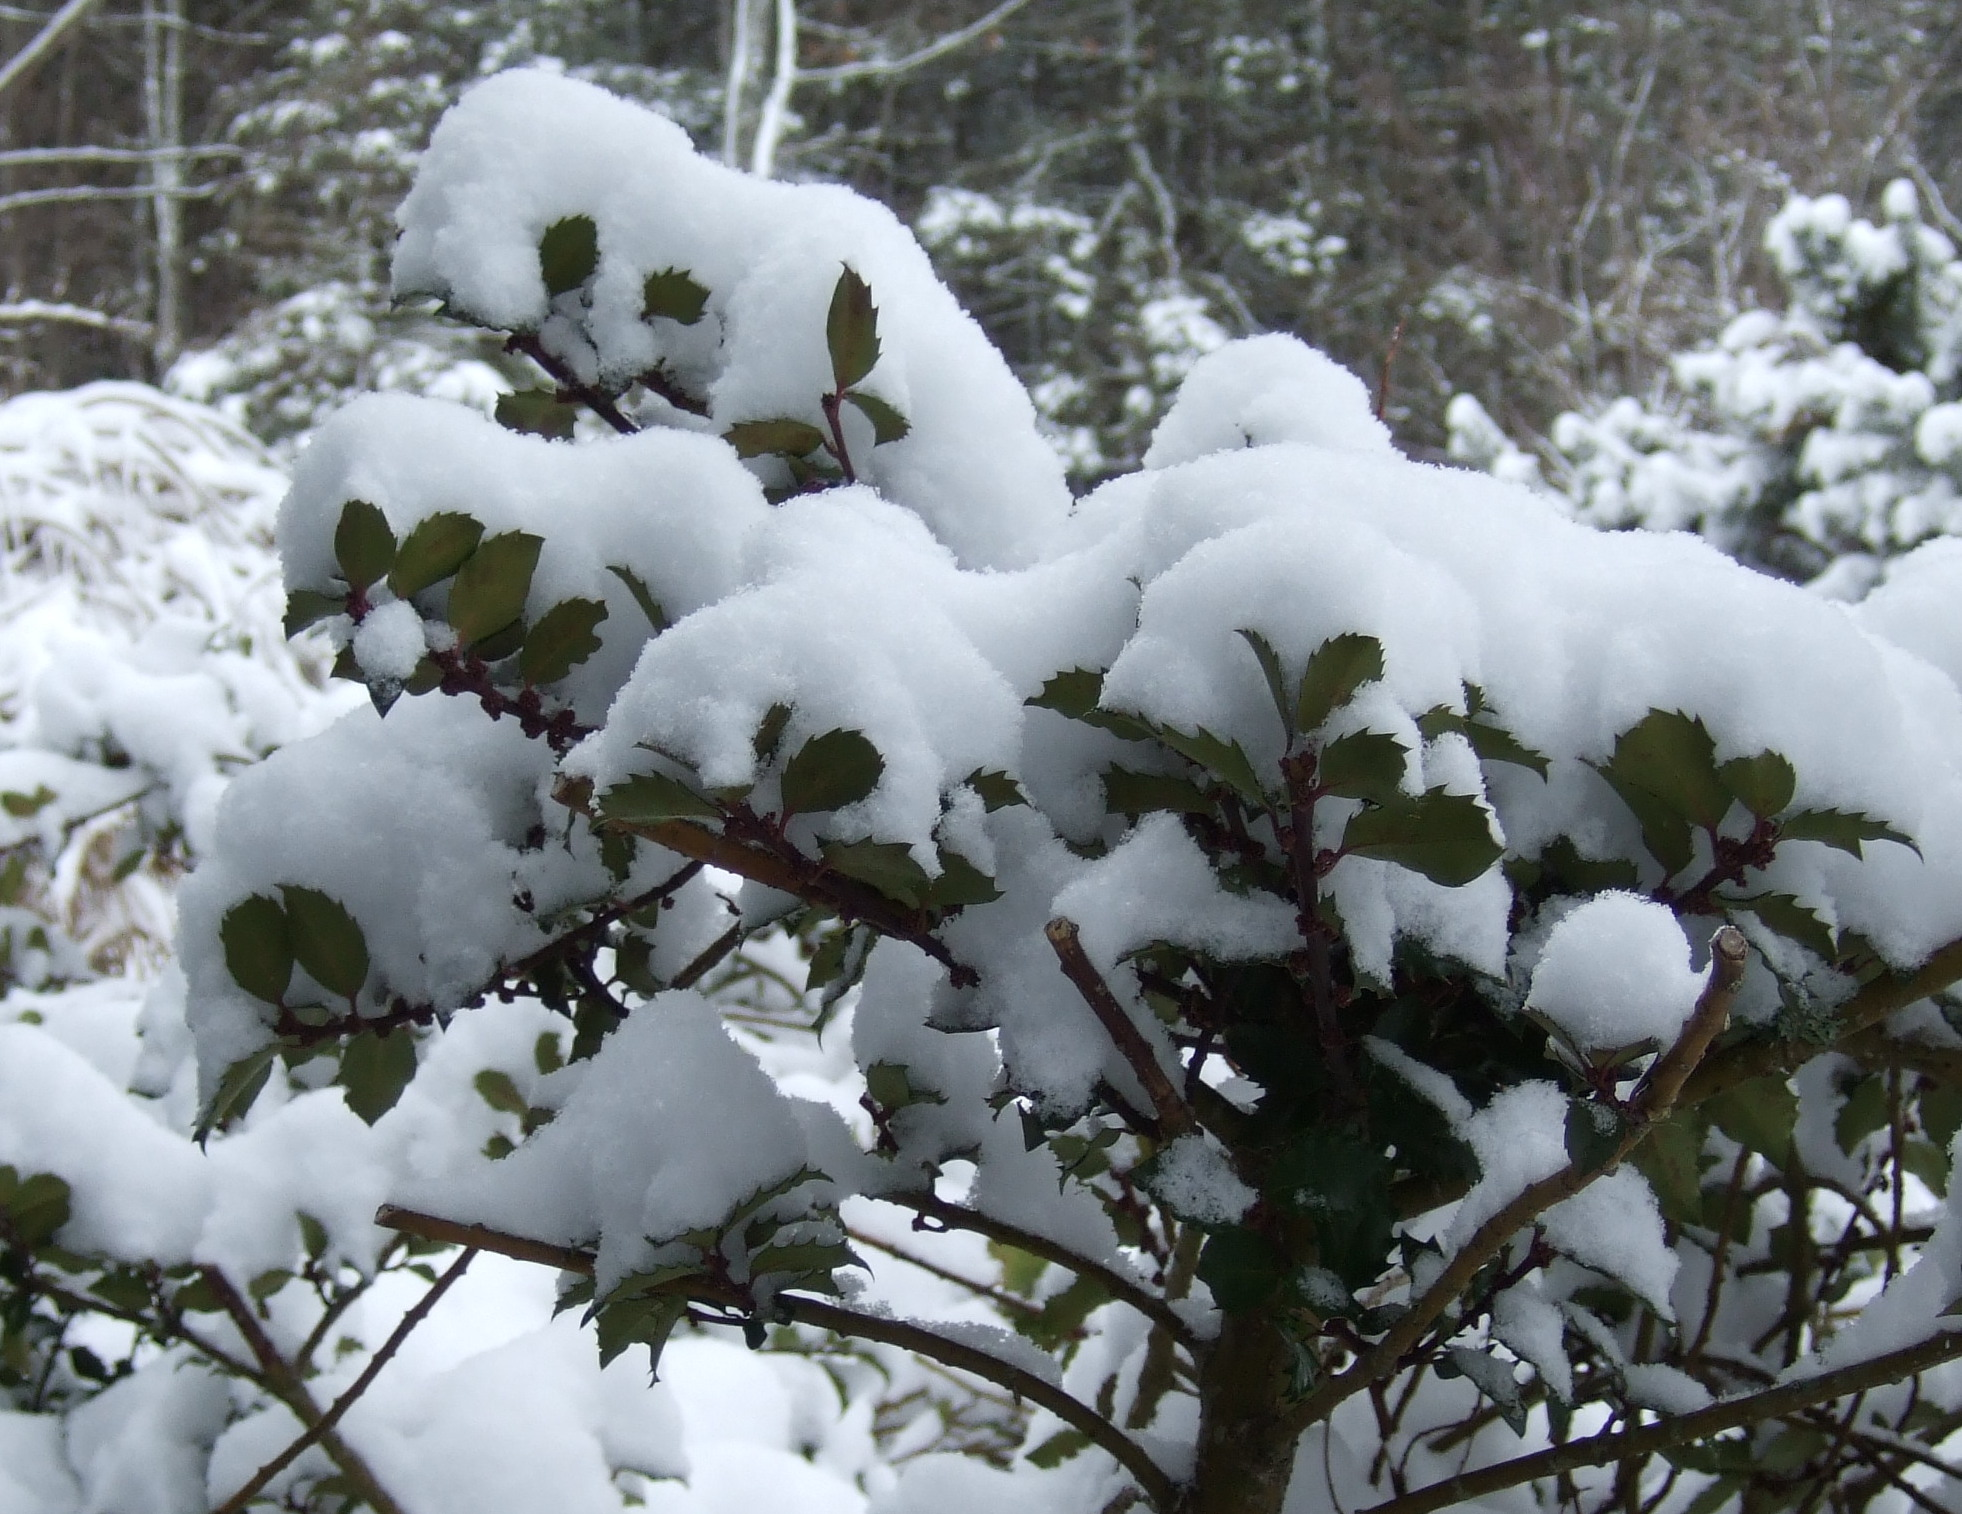 snow-topped holly bushes